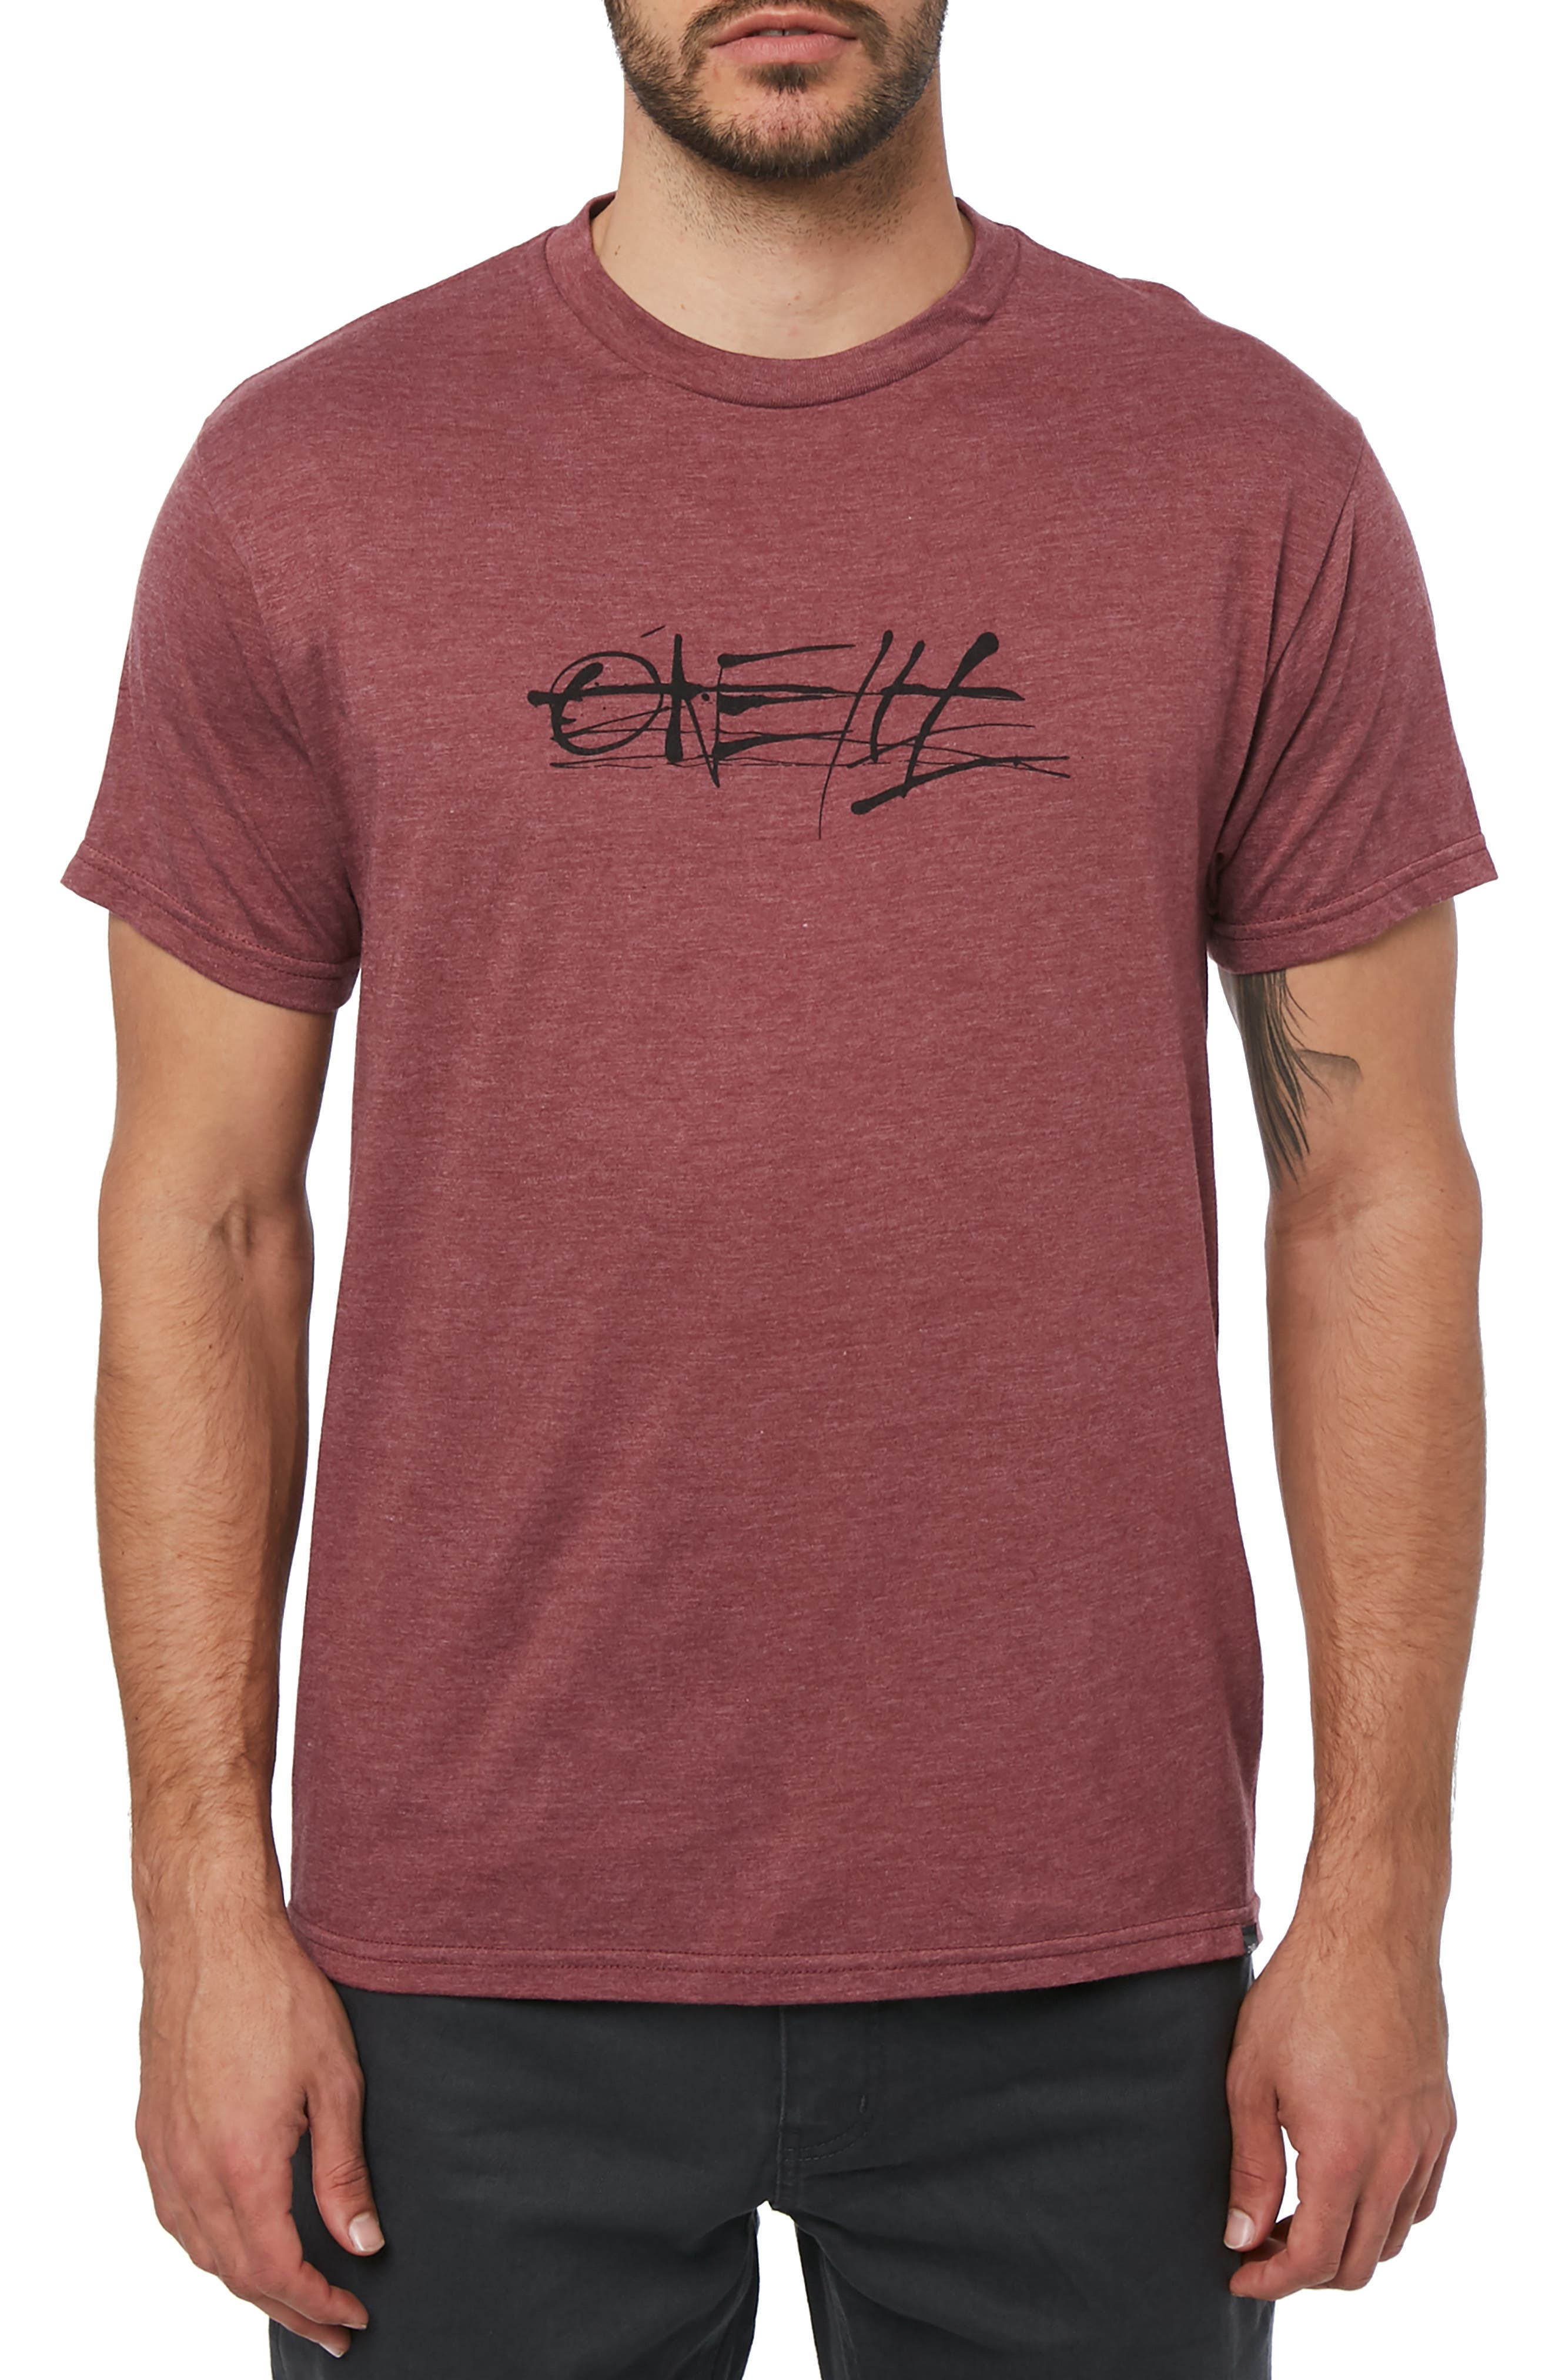 O'NEILL Ink Blast Graphic T-Shirt, Main, color, 930